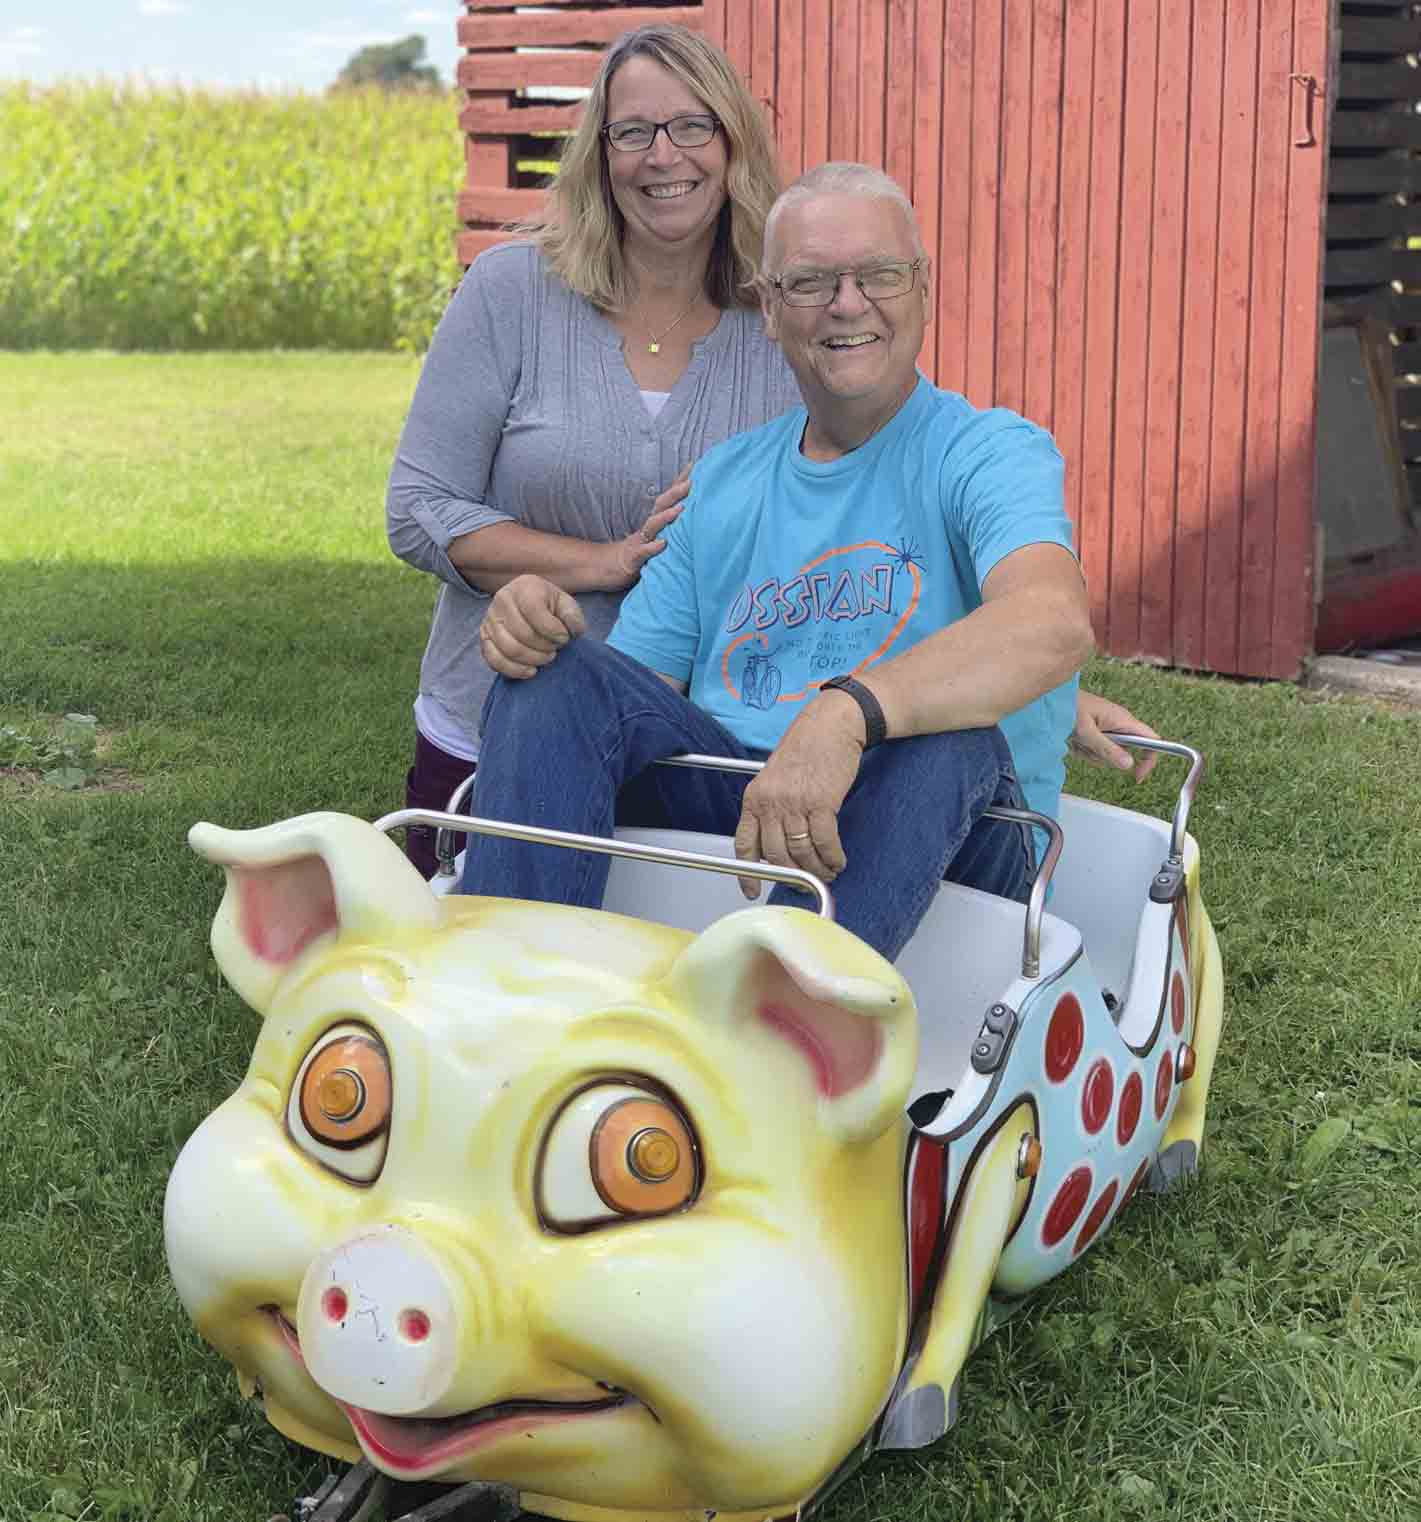 LaVerne and Julie Anderson of Ossian are saying 'thank you' the best way they know how on Saturday, Sept. 21, when they host Andyland Fun Day at their home (1732 160th Street). The event is LaVerne's way of thanking the community and the families of those who have supported him as...